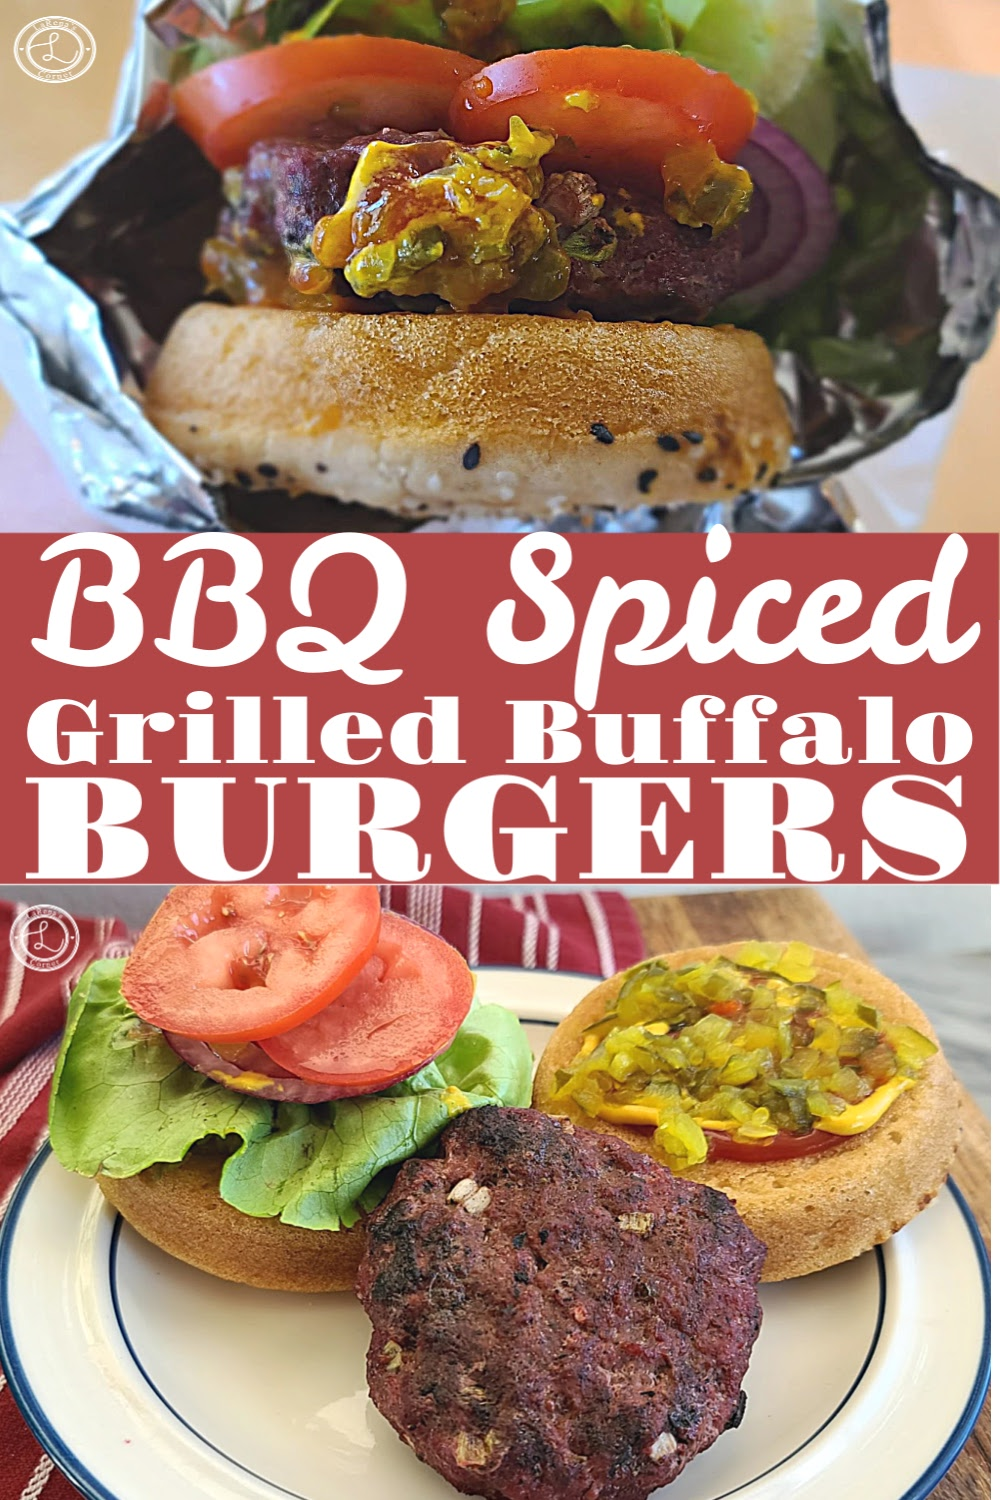 2 pictures of the BBQ-Spiced Grilled Buffalo Burgers. One wrapped up with tomatoes peeking out of the bun. One of the burger with the bun and fixings.